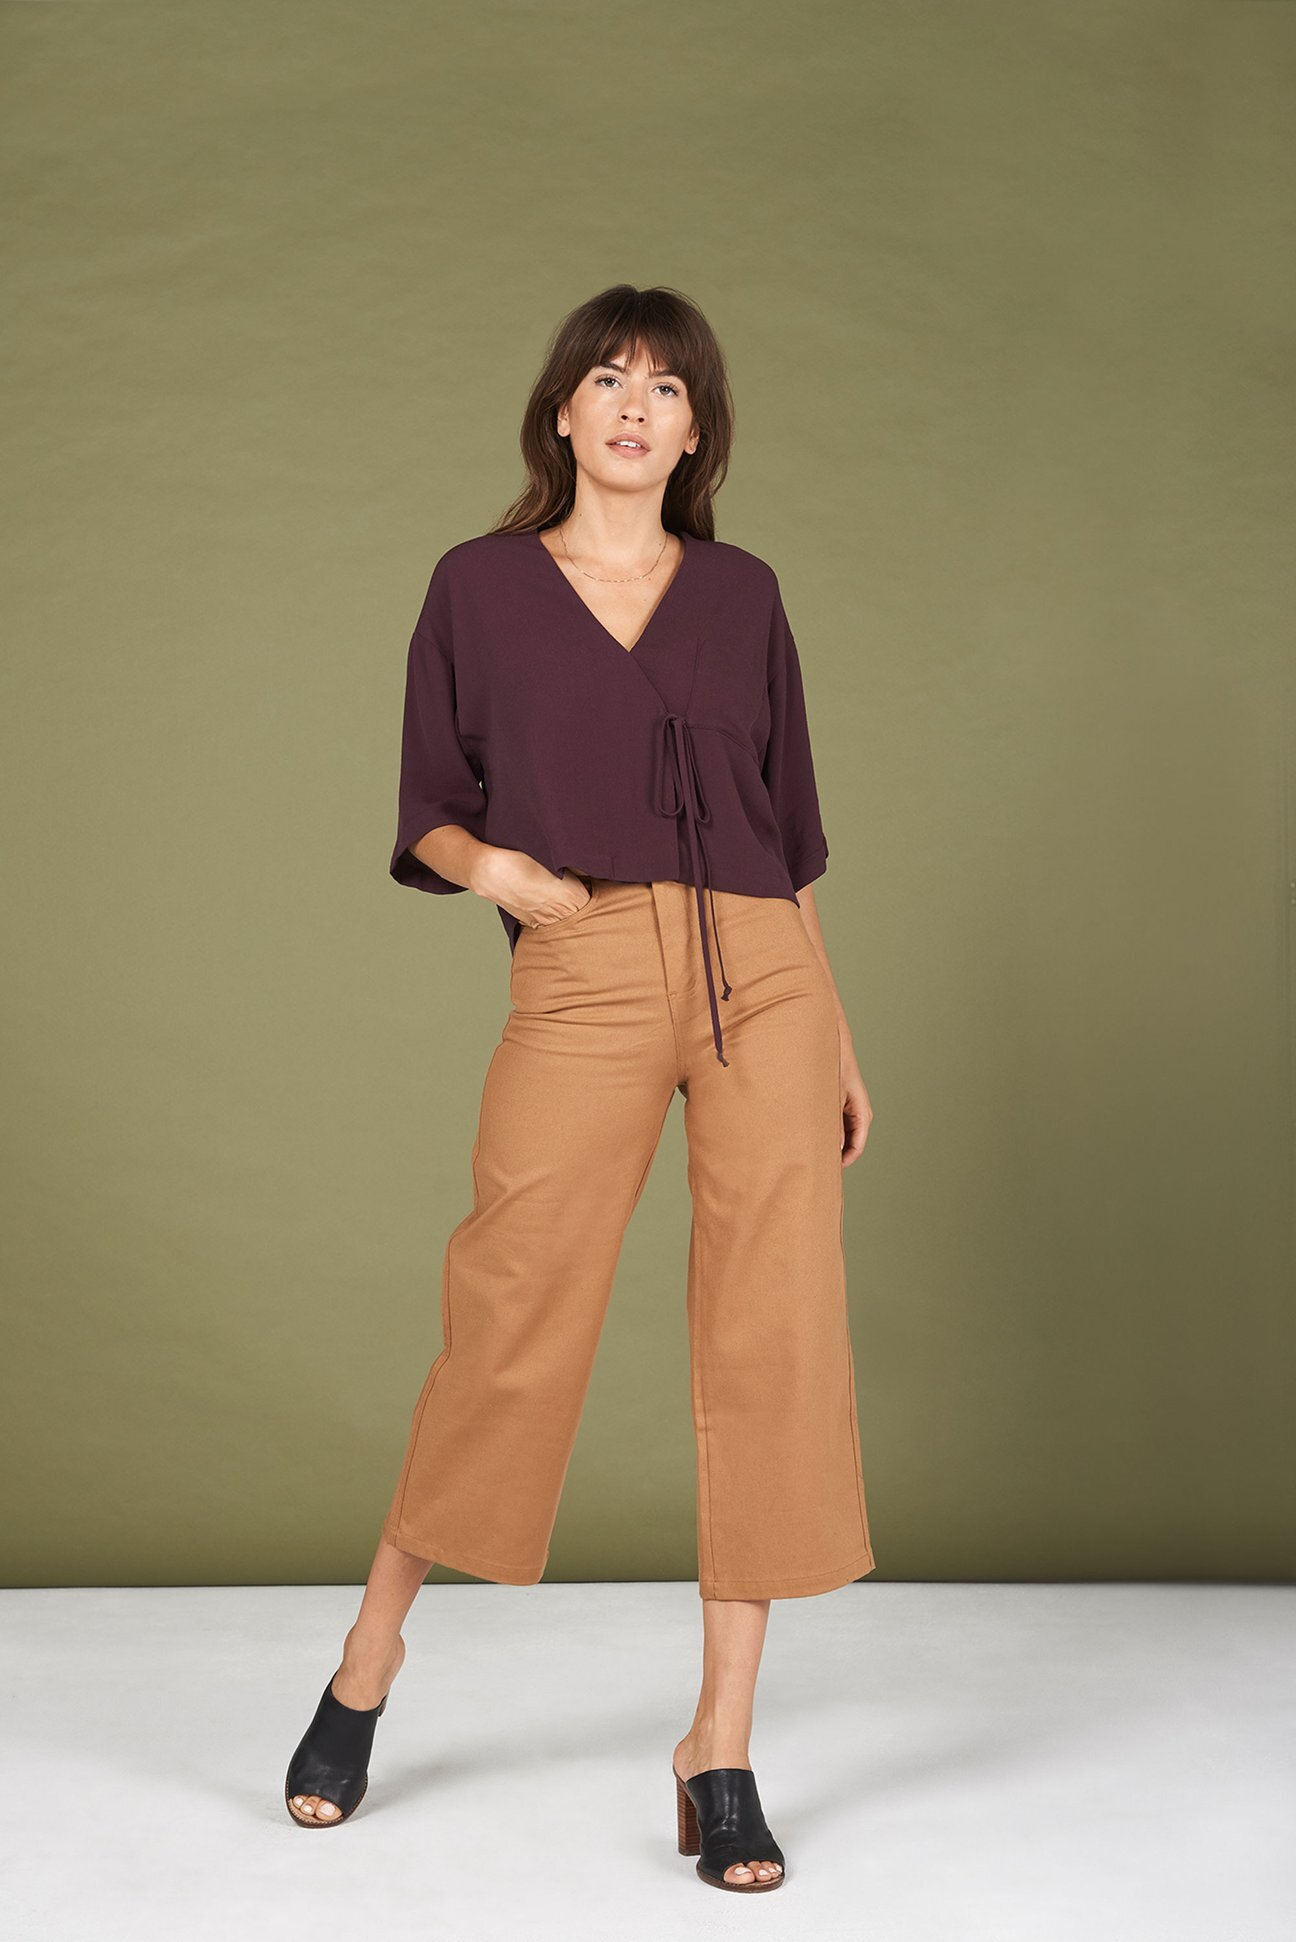 Whimsy & Row - Taylr Top / $72With its cool mornings and scorching afternoons, it's hard to plan an outfit that accommodates autumn's fickle behavior. That's why this breathable, rayon wrap-top will be a perfect accomplice to any cardigan.